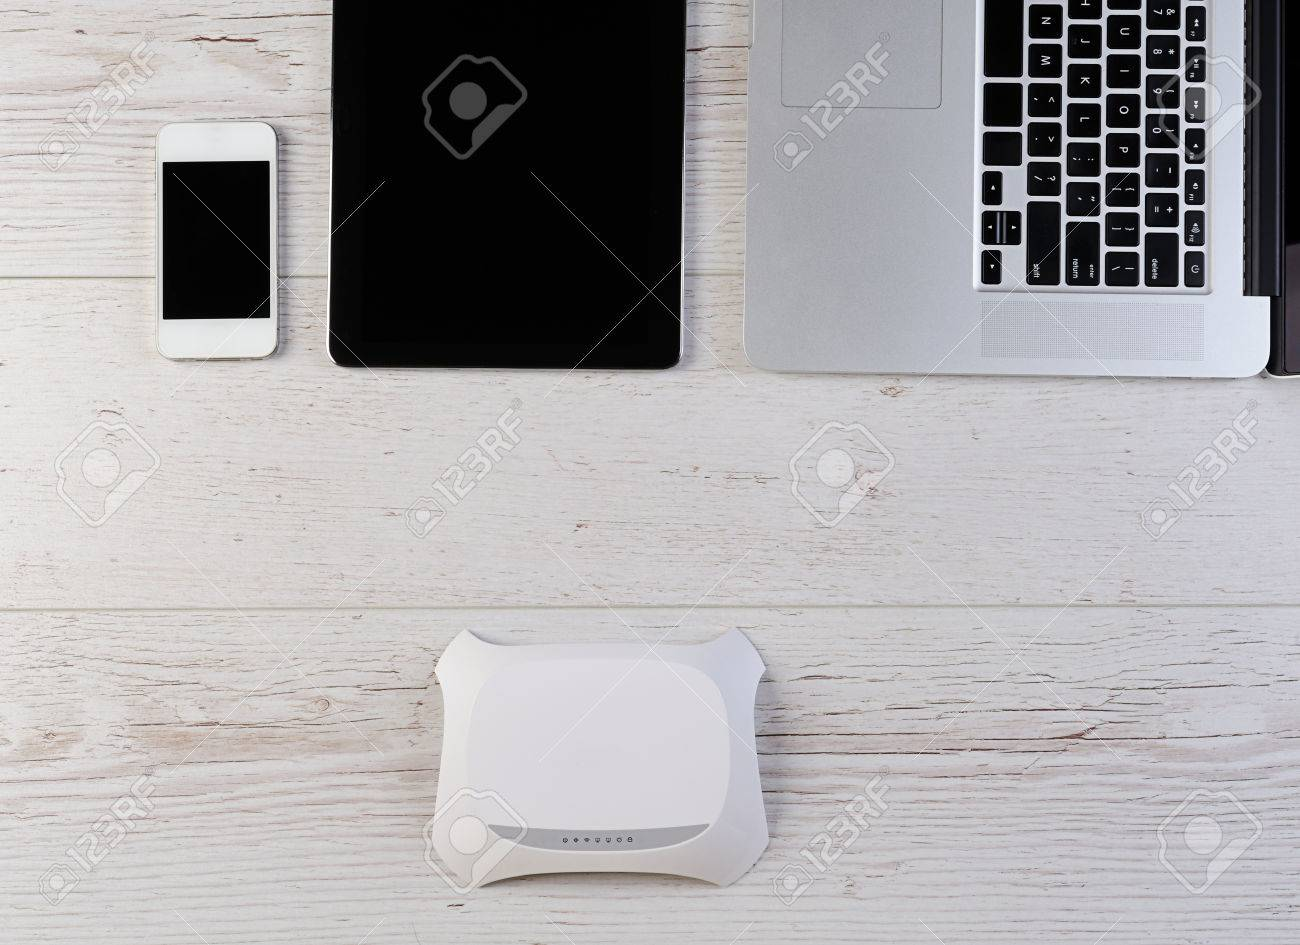 Wifi internet router modem connect laptop tablet and smartphone stock photo wifi internet router modem connect laptop tablet and smartphone on wood keyboard keysfo Image collections